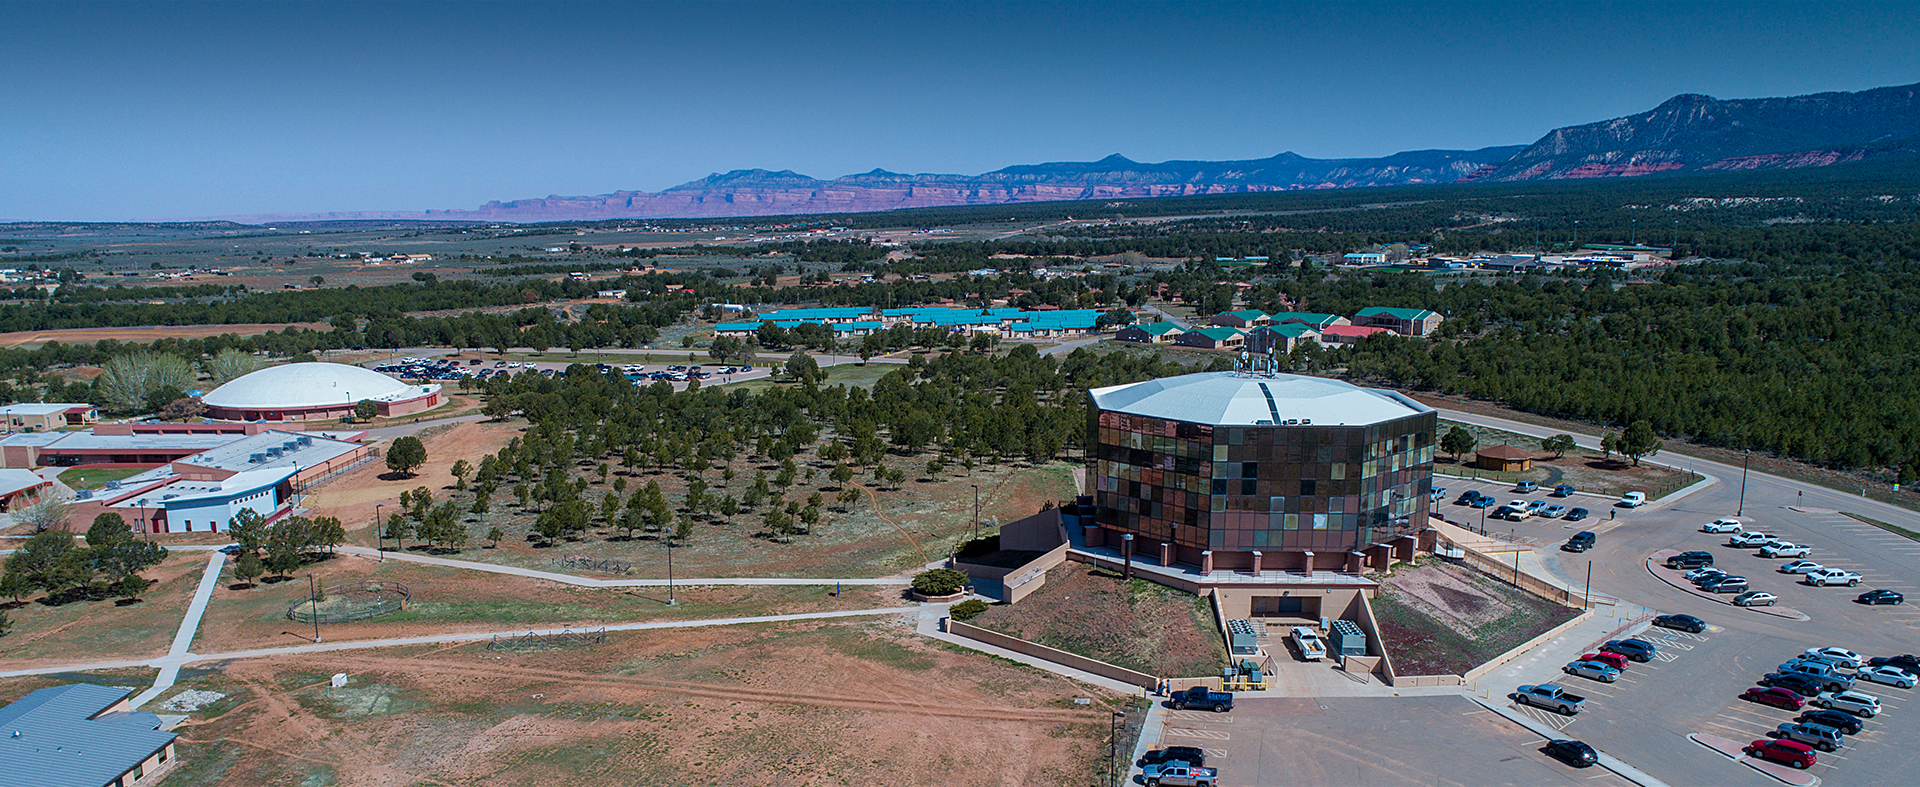 What Does It Cost to Attend Diné College?